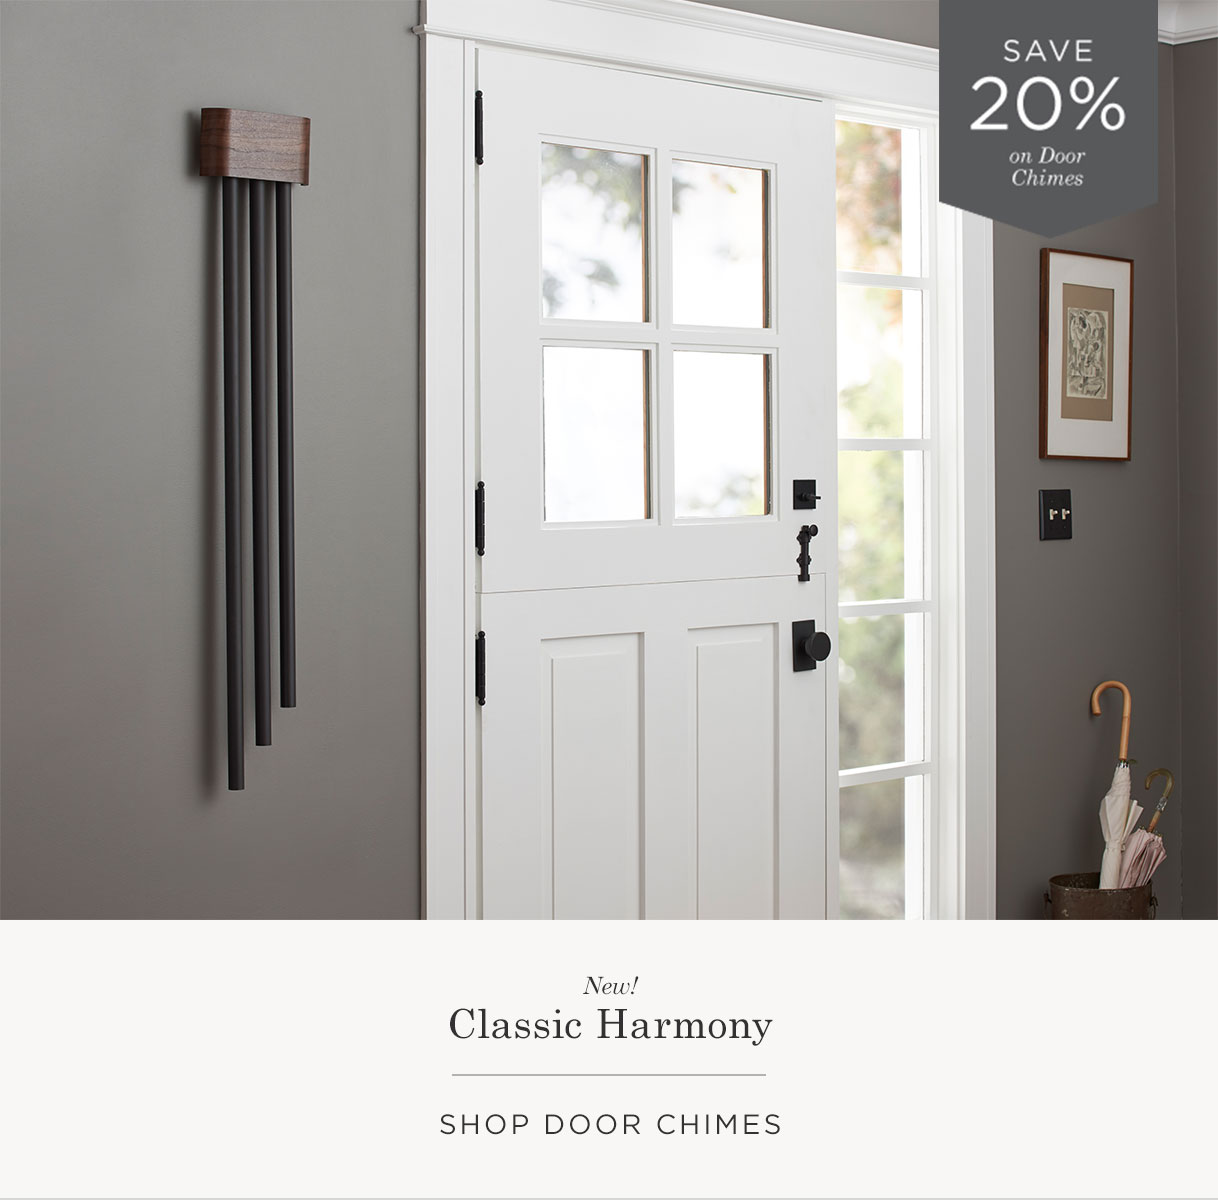 Shop Door Chimes